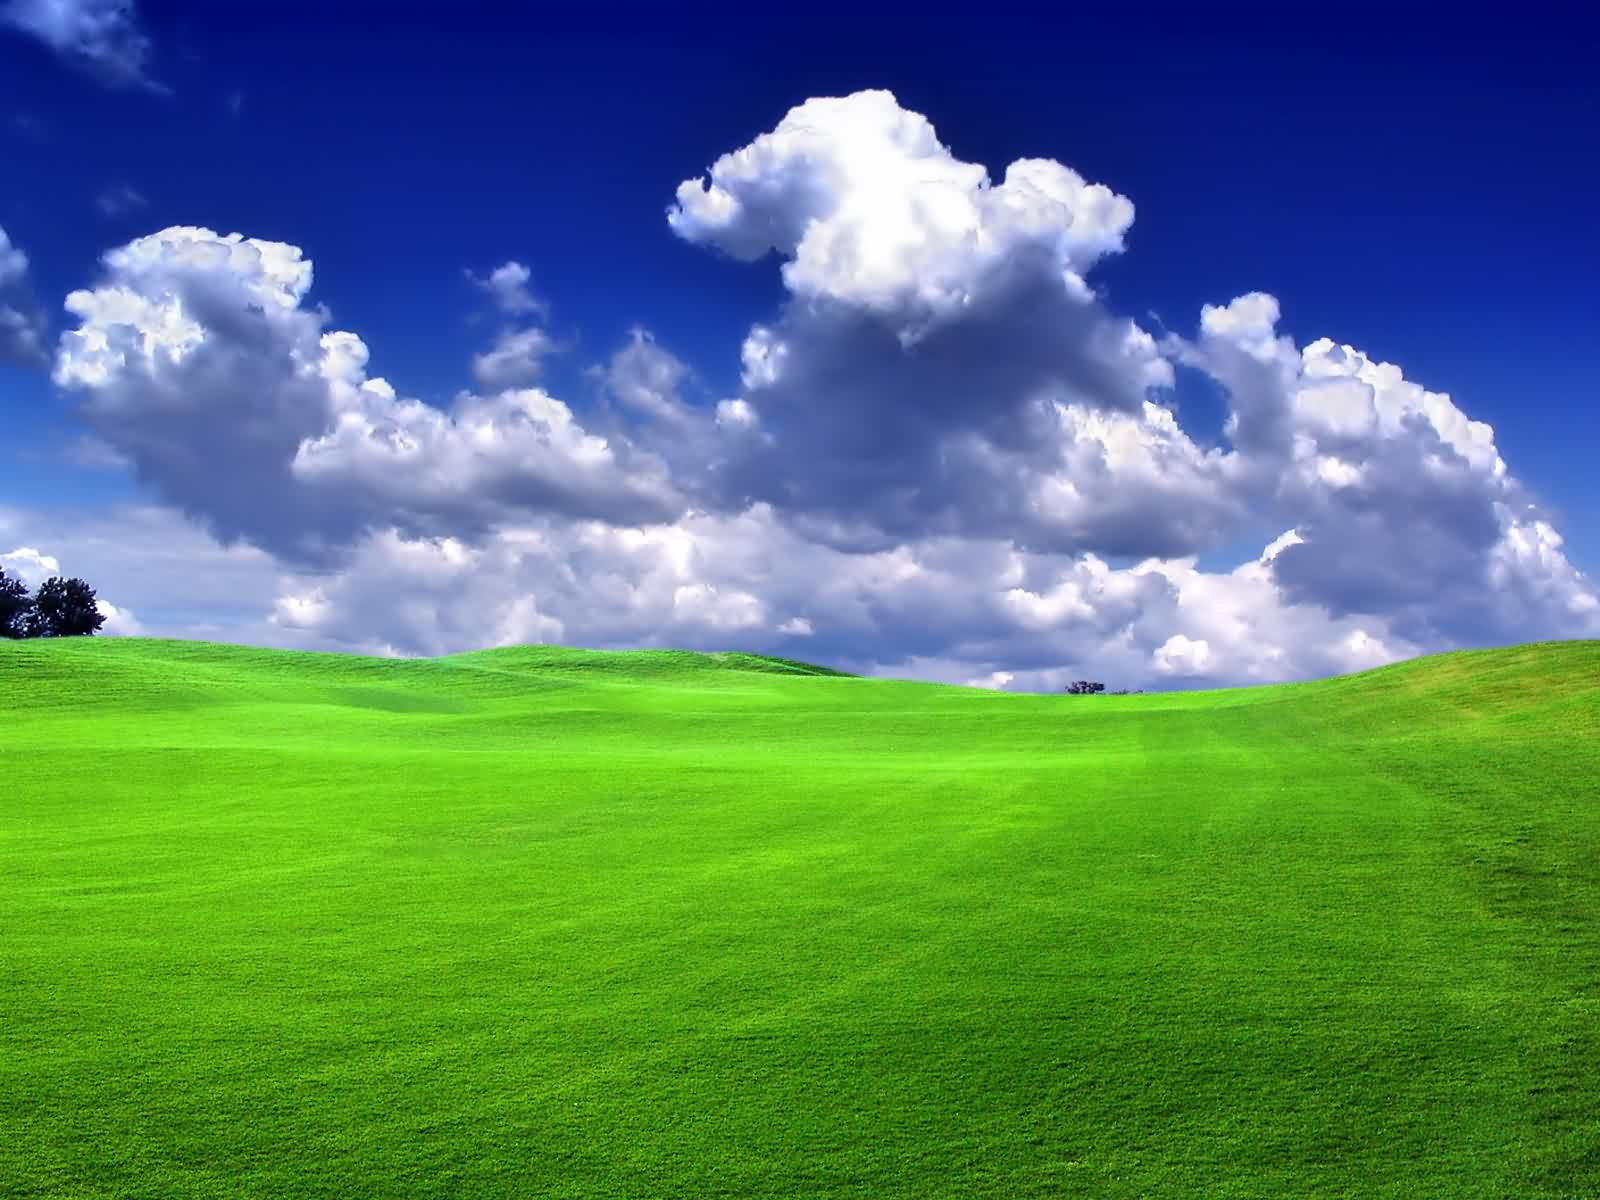 Green%2Bgrass%2BBlue%2Bsky%2Bcloud%2Bsketches%2Bof%2Bnature%2Bwallpapers Wallpaper nature free beautiful